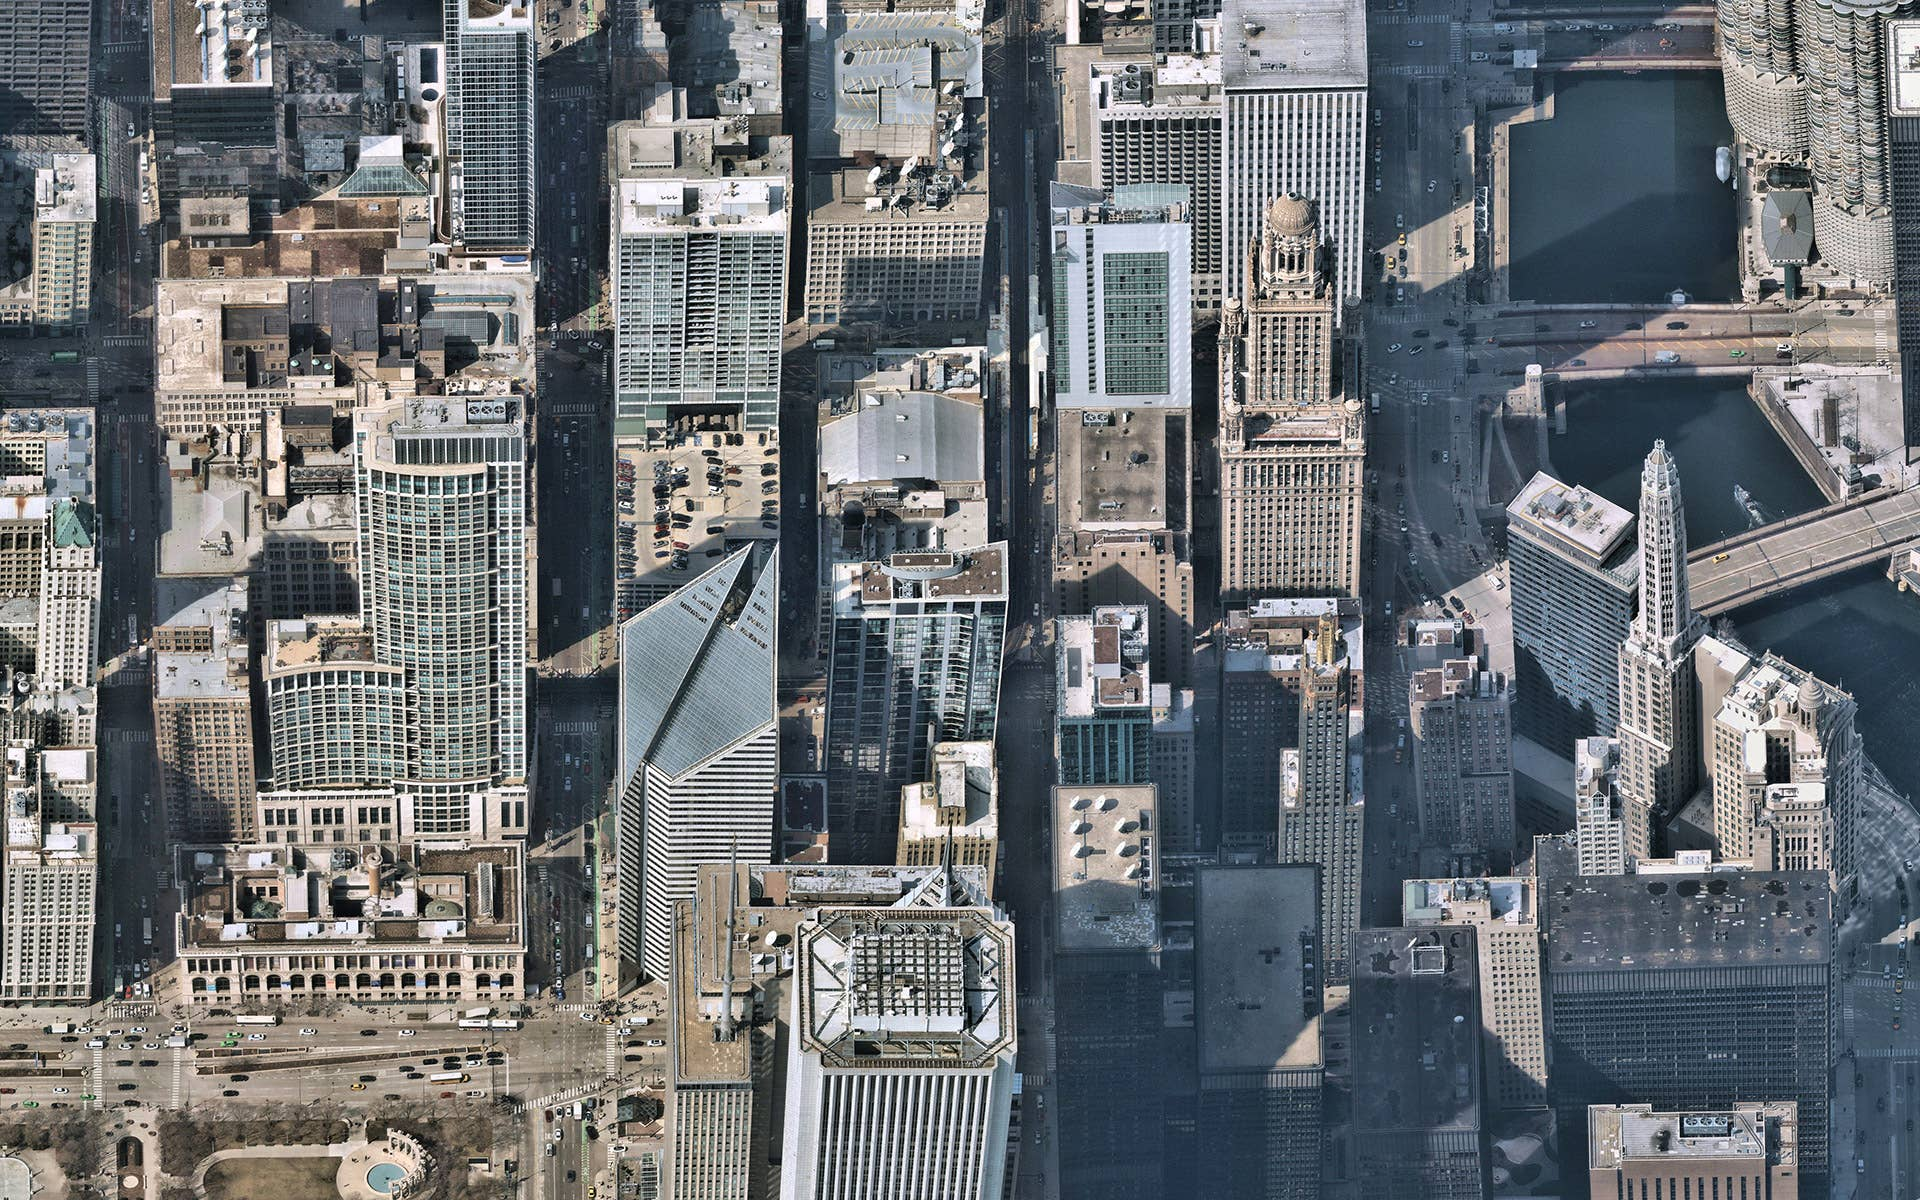 aerial, imagery, oblique, cityscape, chicago, illinois, 2019 July 22